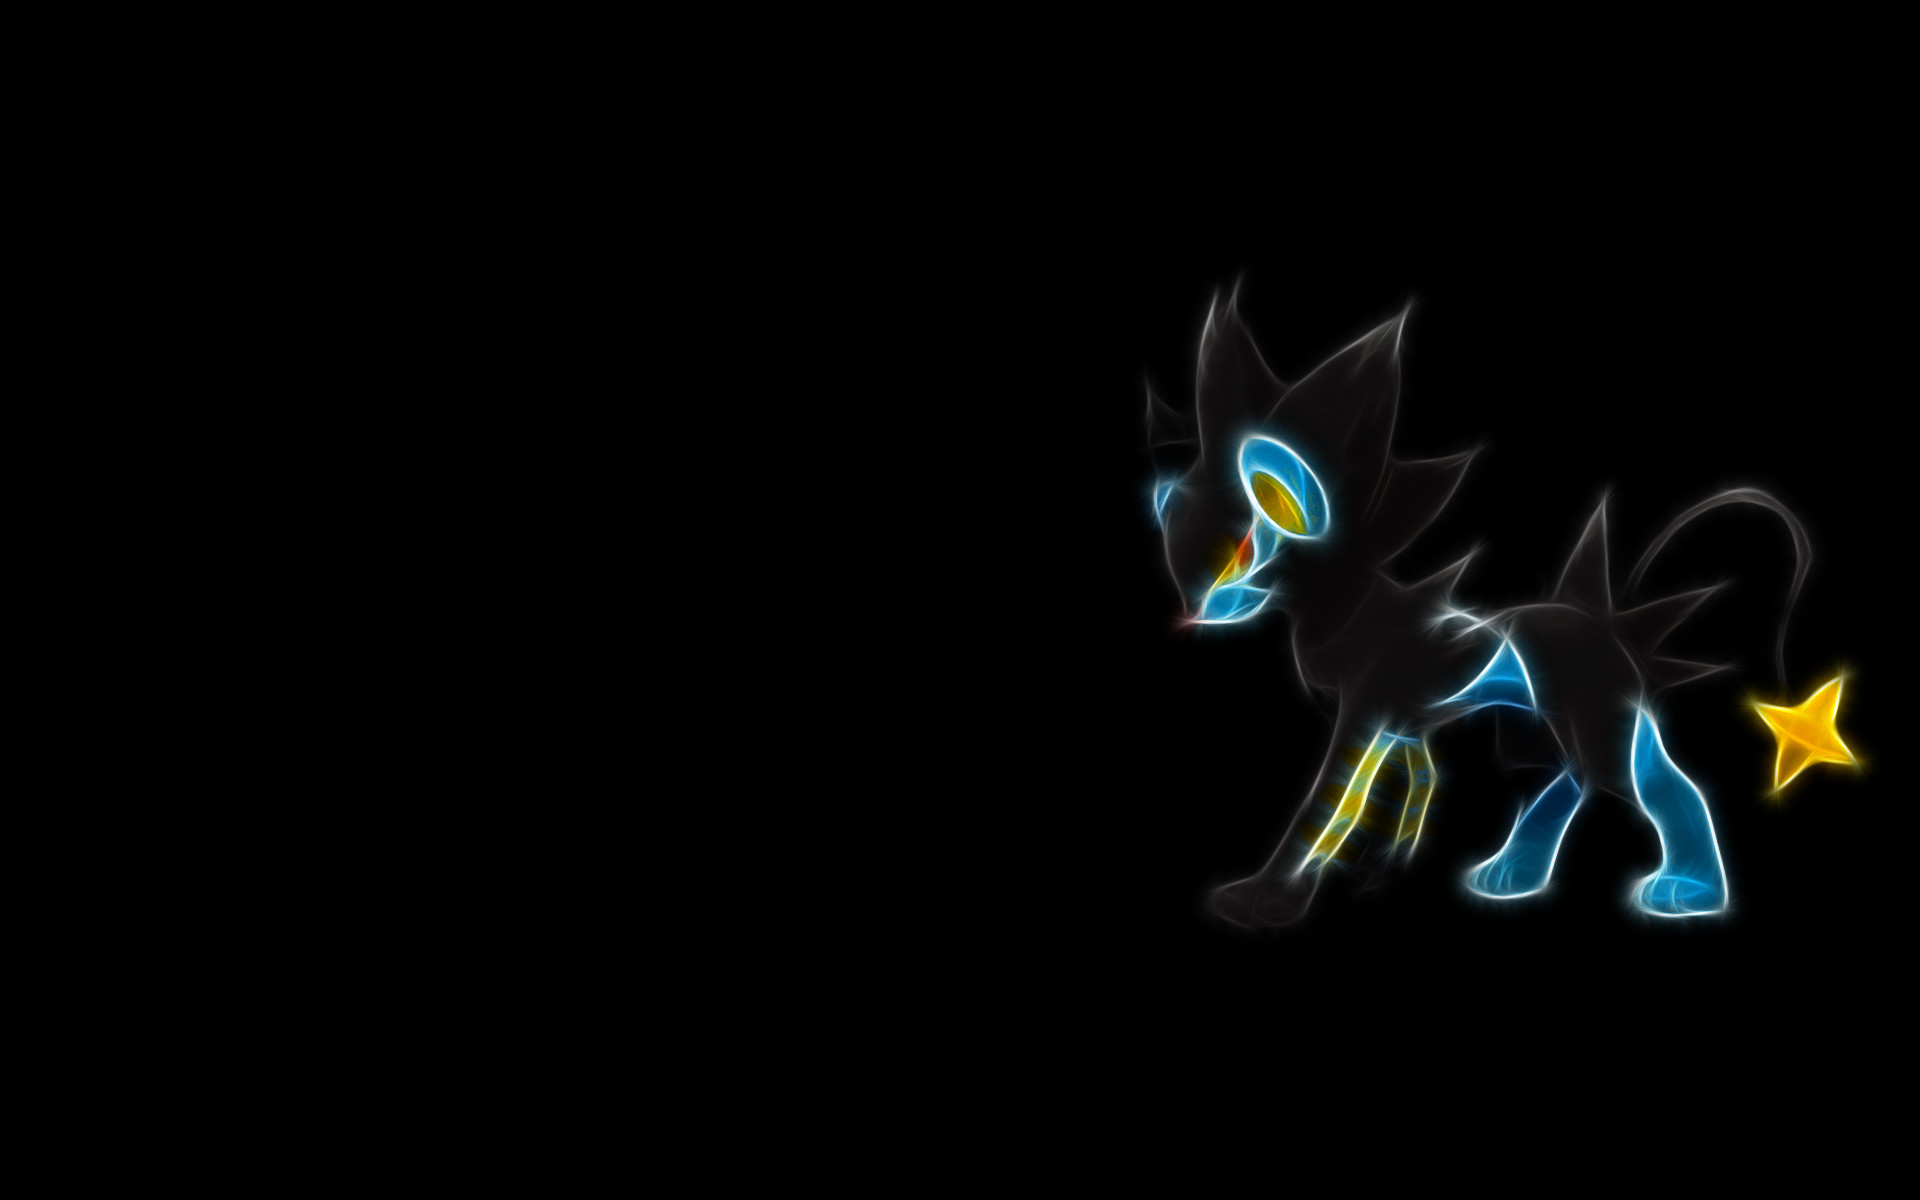 1920x1200 10 best Pokemon images on Pinterest | Black backgrounds, Drawings and Fire